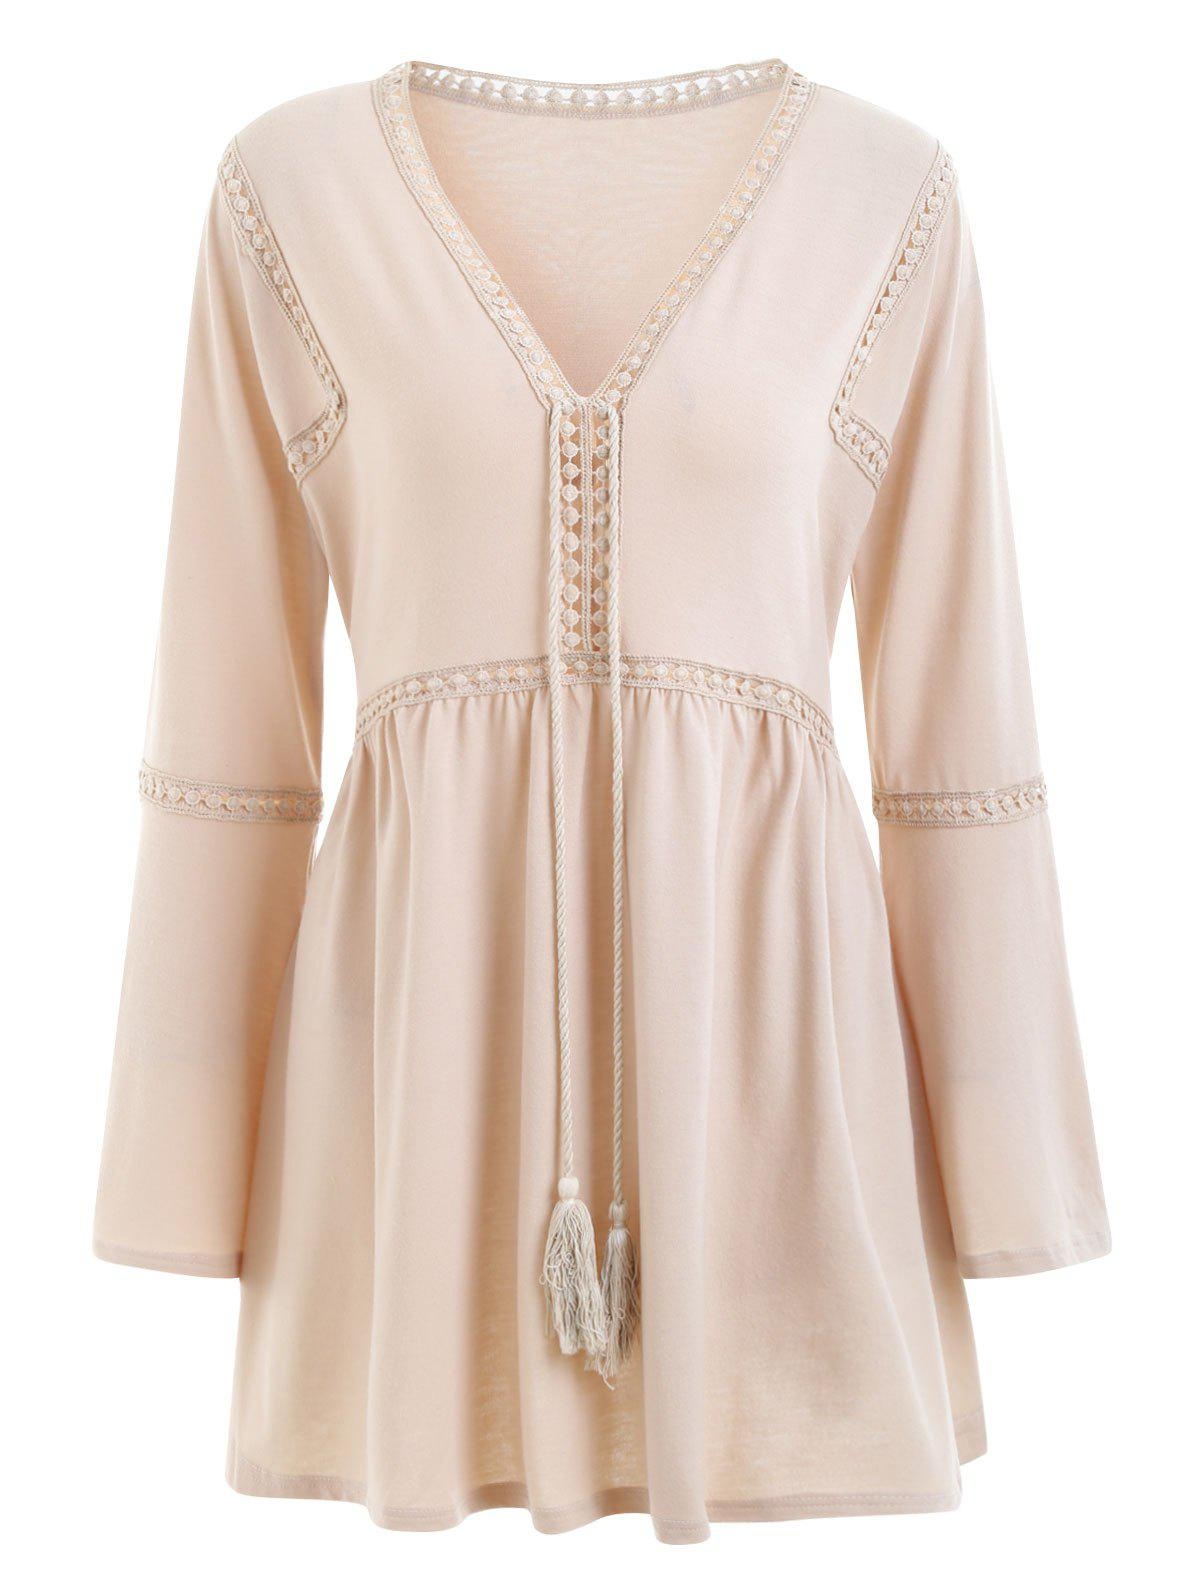 Plus Size Crochet Embellished V Neck Peasant DressWOMEN<br><br>Size: XL; Color: YELLOWISH PINK; Style: Casual; Material: Polyester; Silhouette: A-Line; Dresses Length: Mini; Neckline: V-Neck; Sleeve Length: Long Sleeves; Embellishment: Cut Out,Hollow Out; Pattern Type: Solid Color; With Belt: No; Season: Fall,Winter; Weight: 0.3800kg; Package Contents: 1 x Dress;